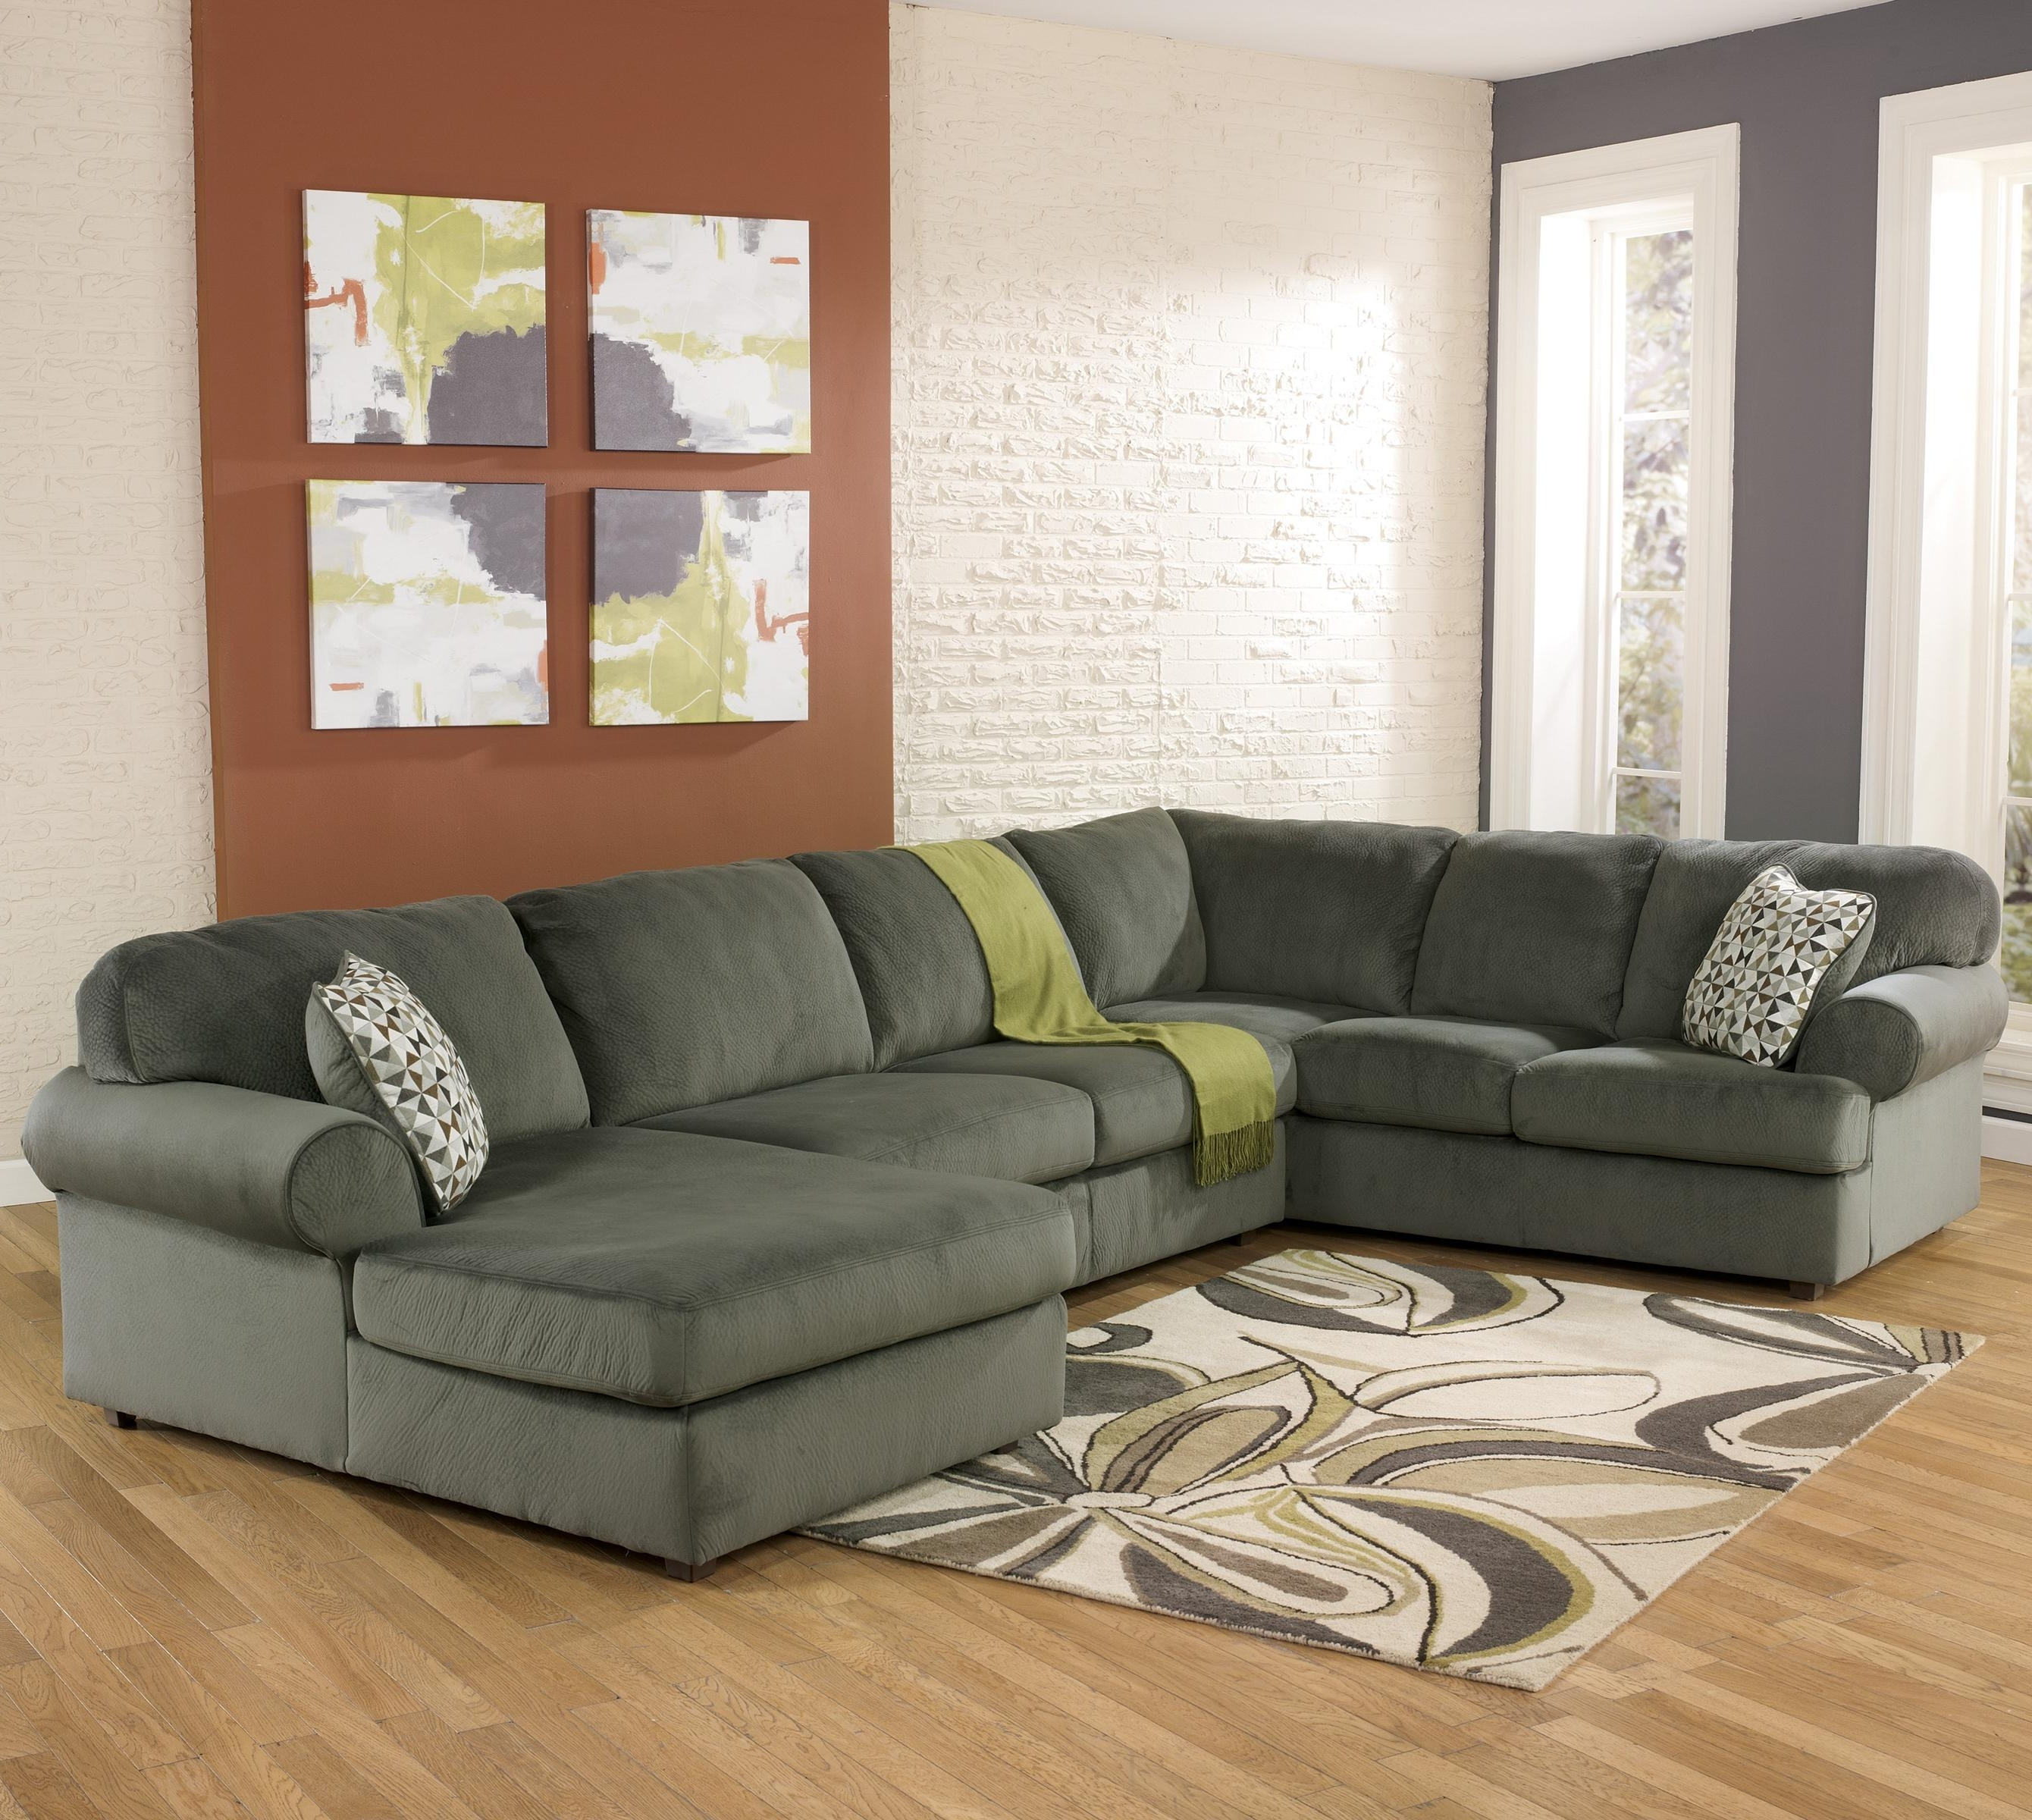 2019 Lancaster Pa Sectional Sofas Inside Casual Sectional Sofa With Right Chaisesignature Design (View 4 of 20)